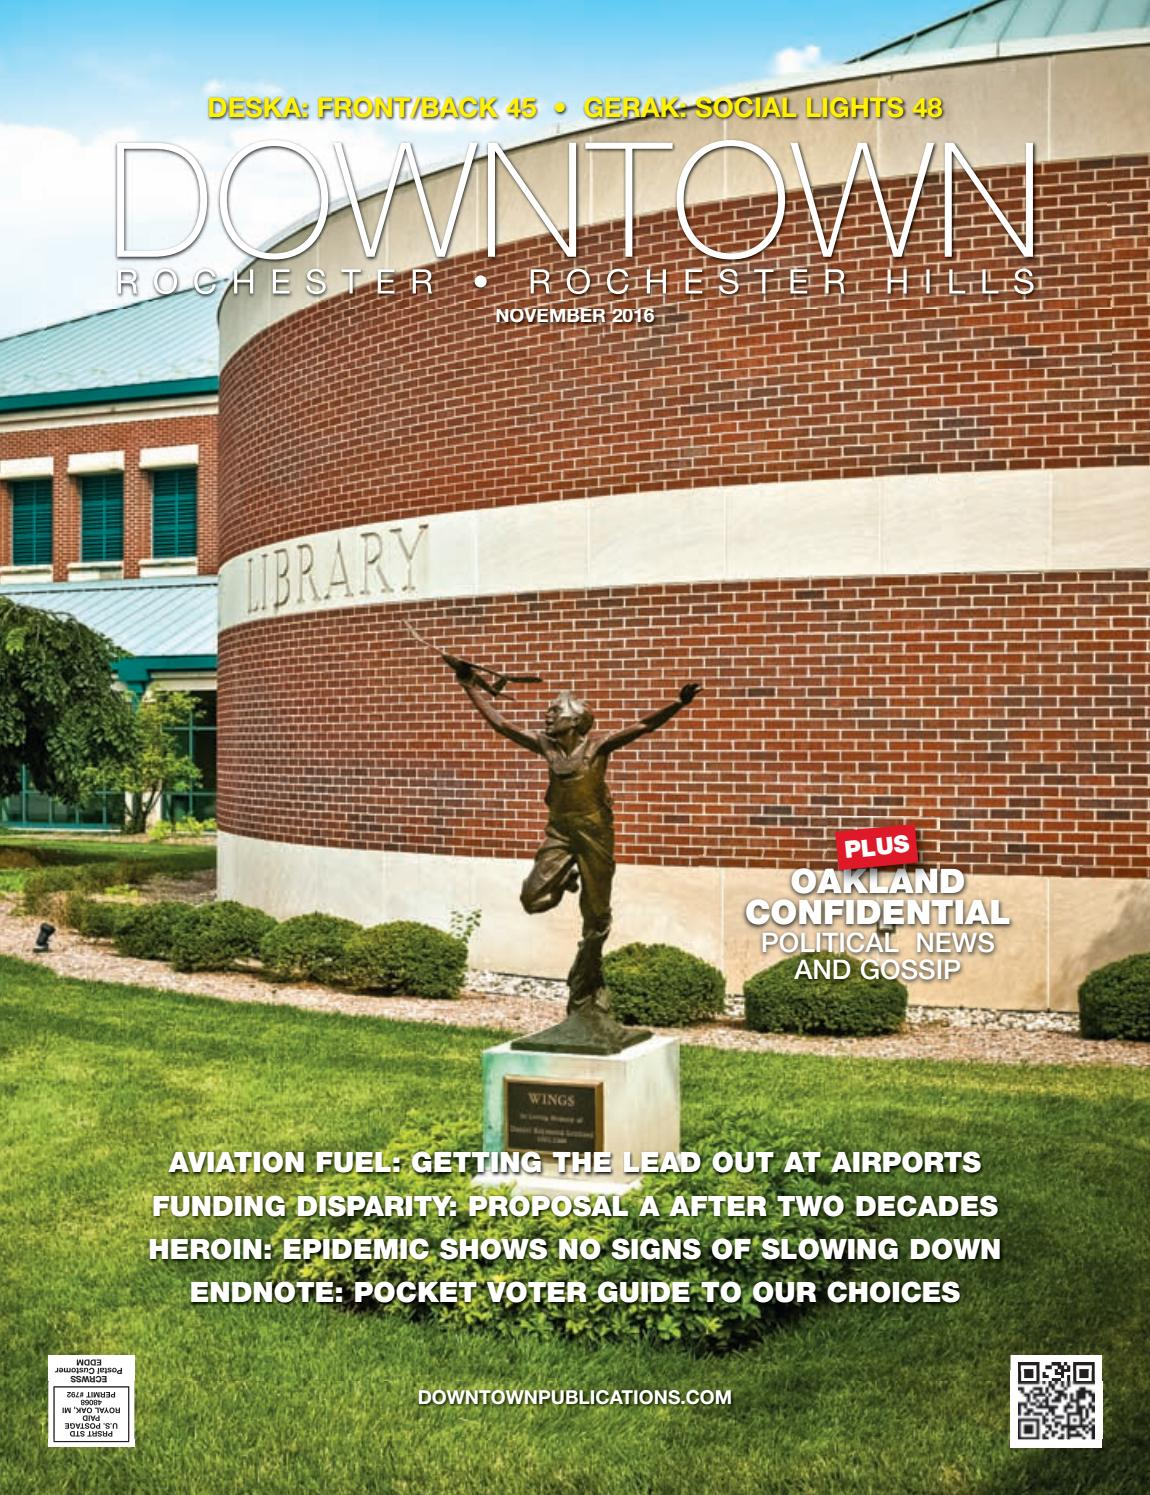 Rochester/Rochester Hills by Downtown Publications Inc. - issuu